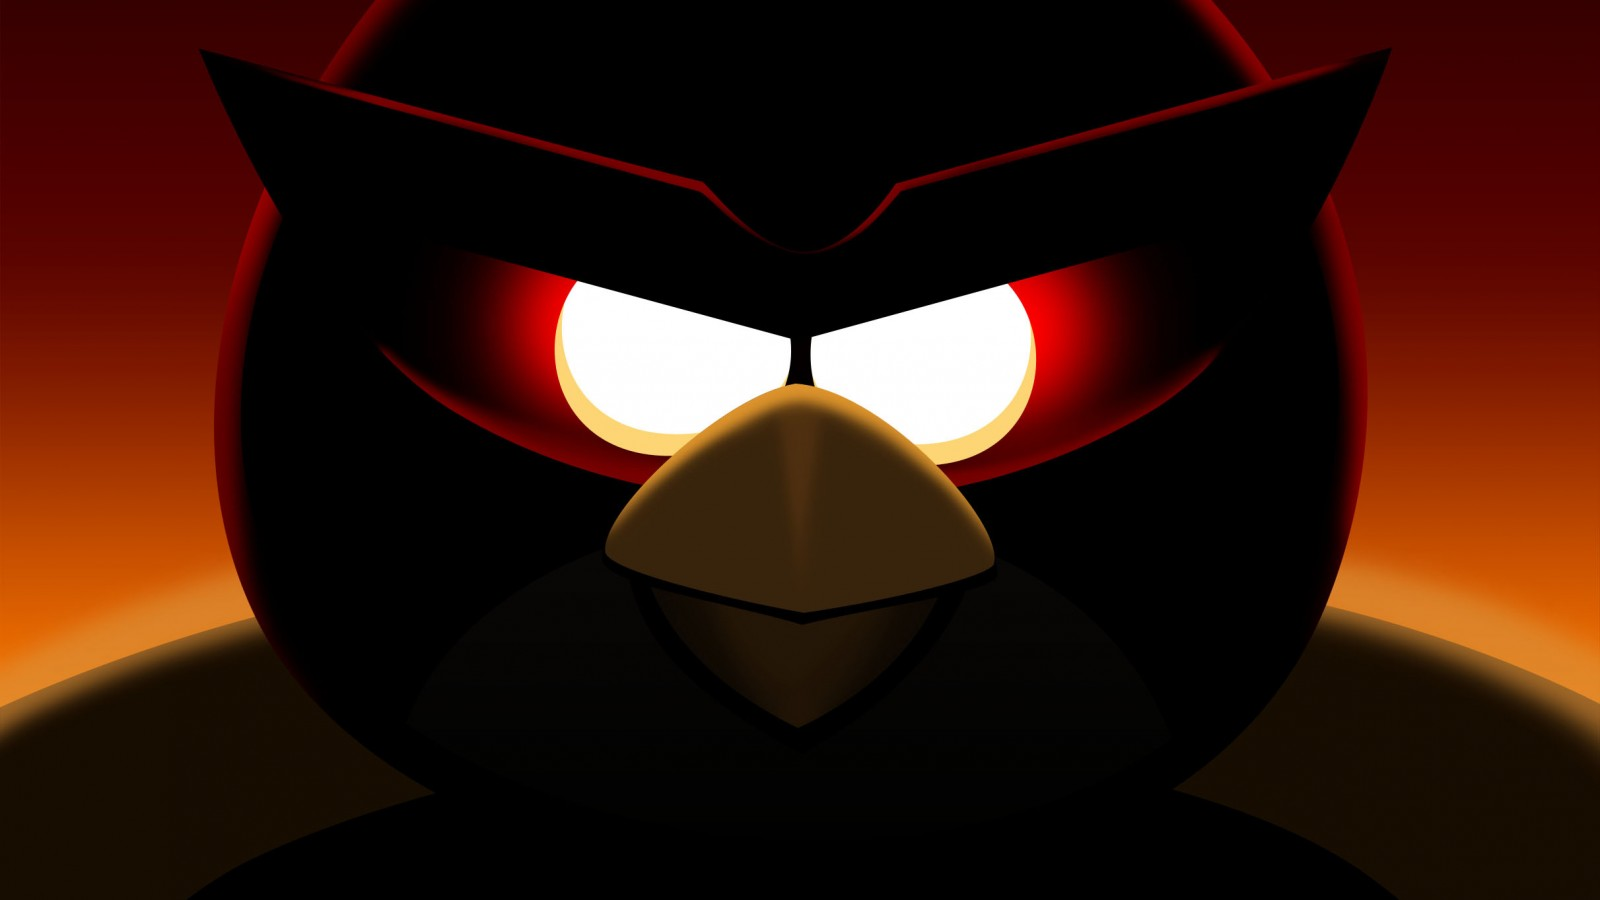 Full Hd Angry Birds Wallpaper 4k , HD Wallpaper & Backgrounds